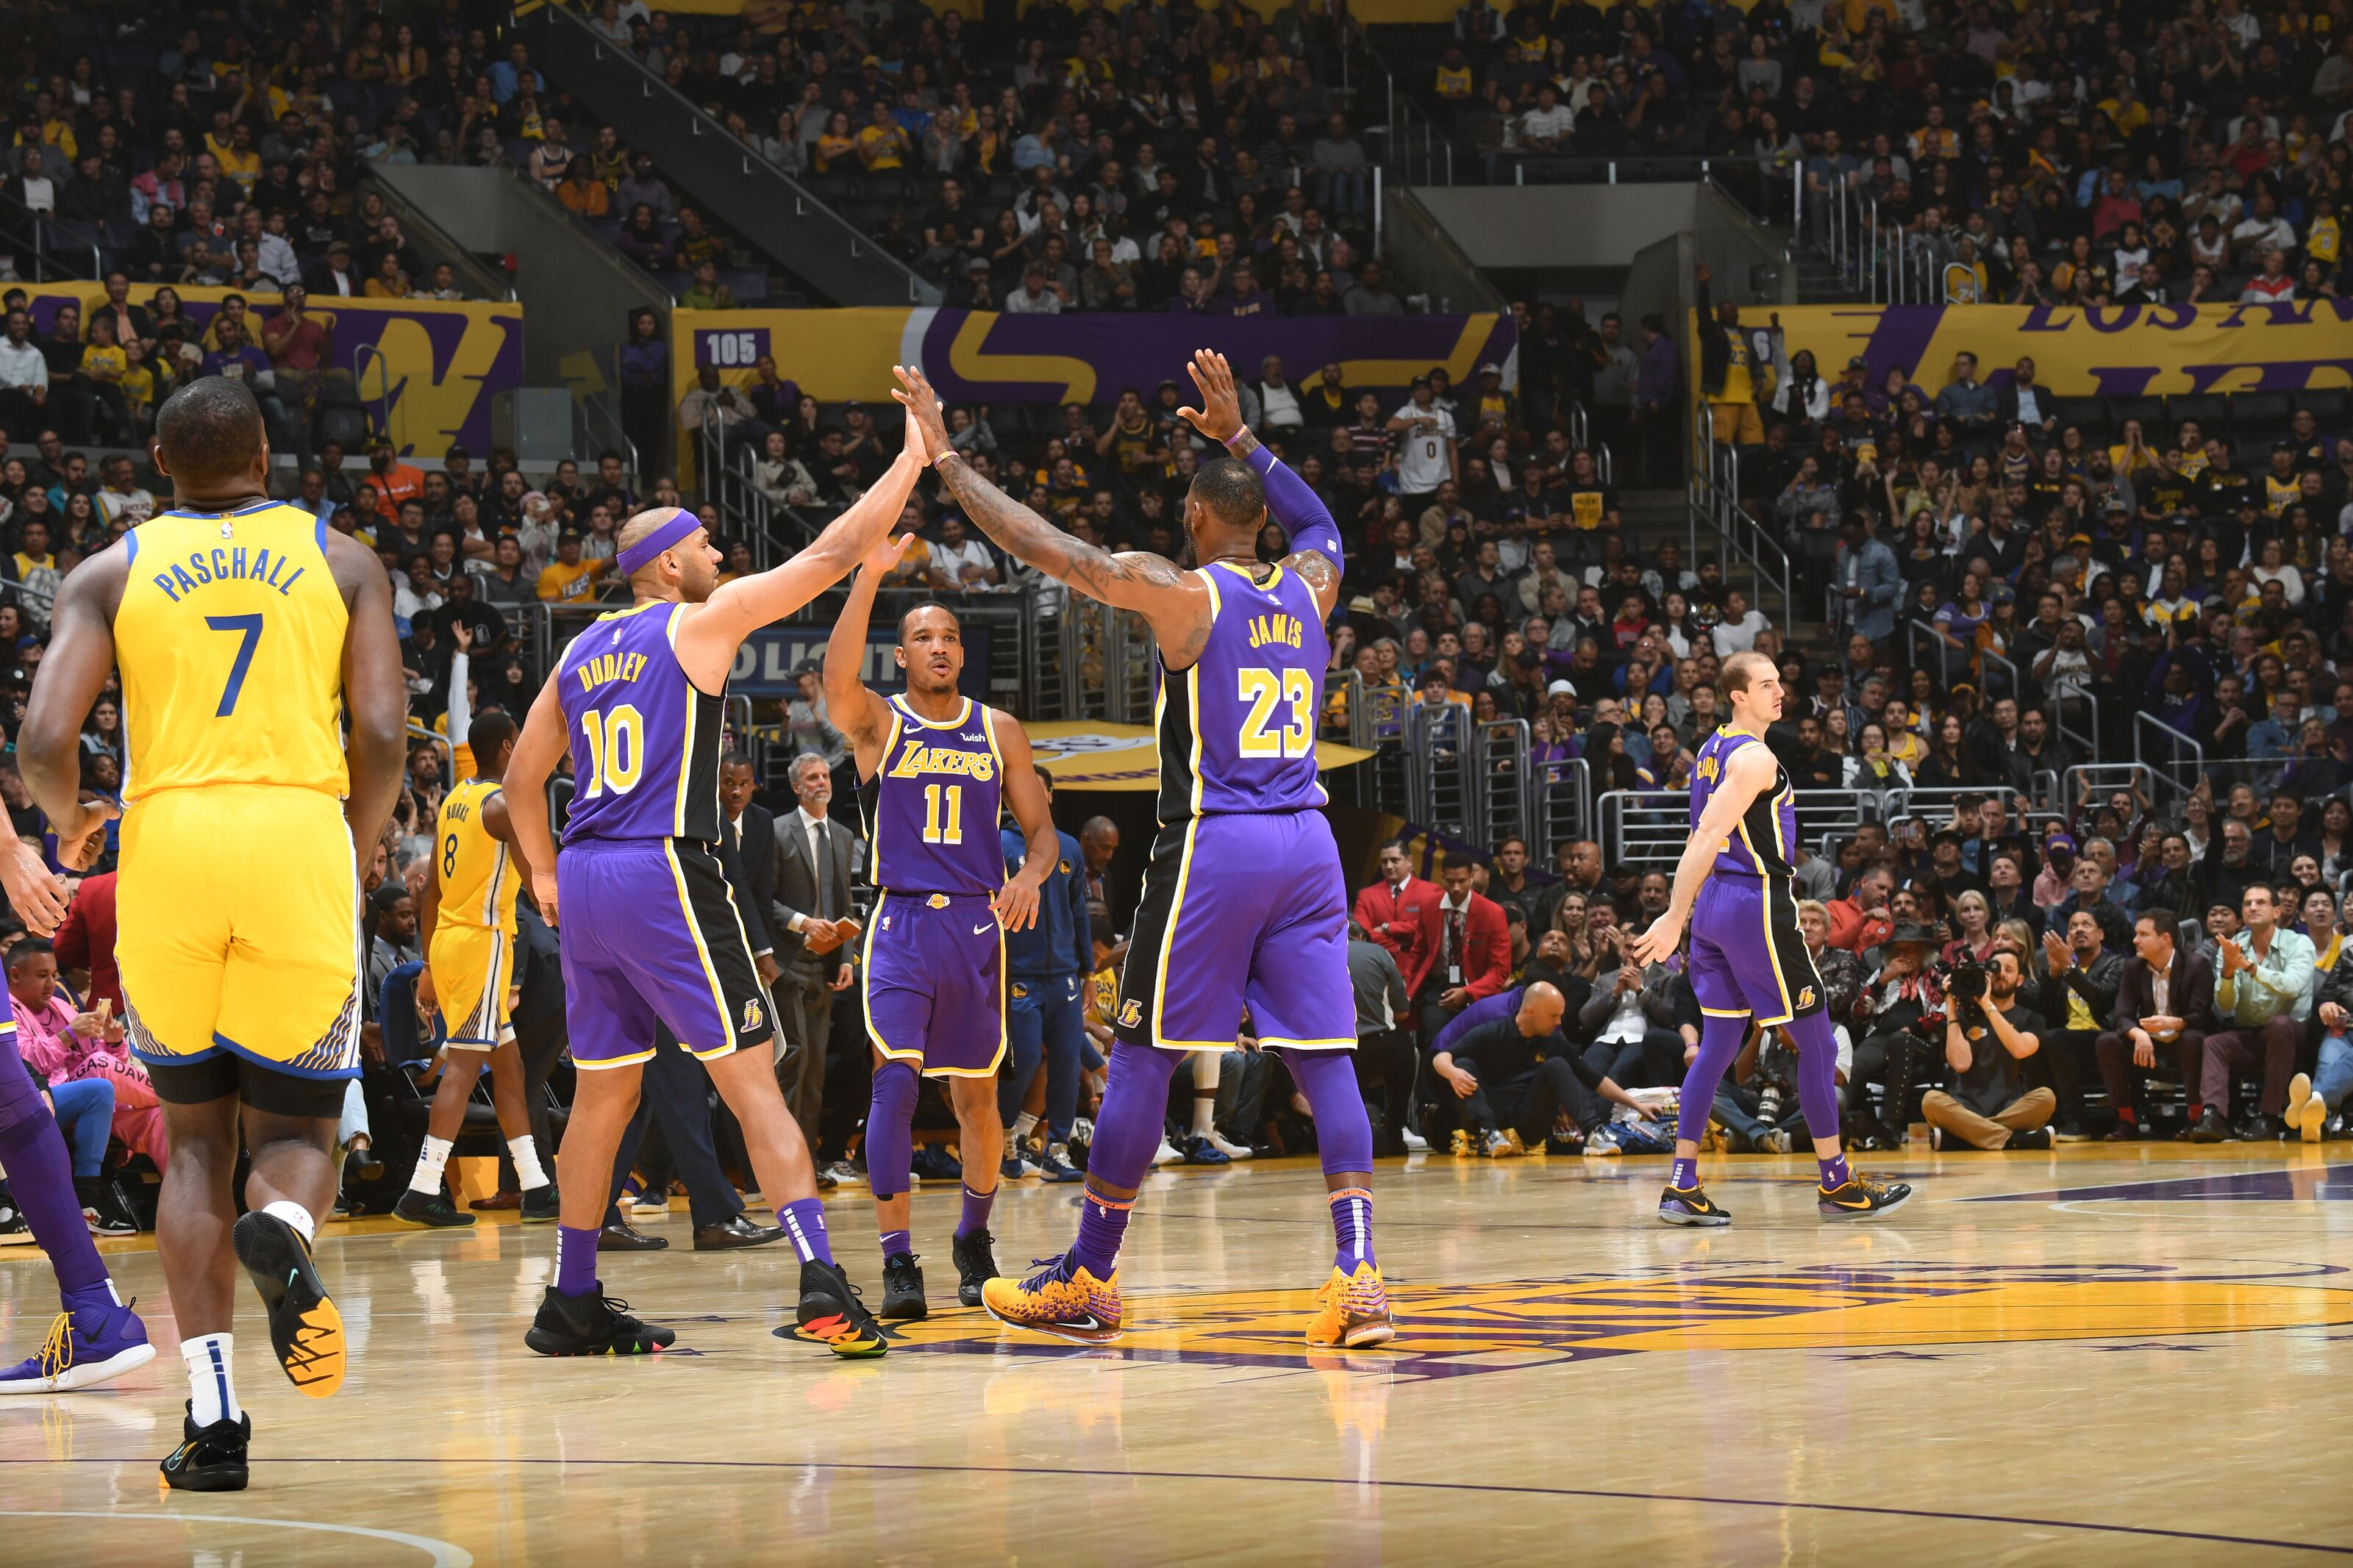 The Lakers' role players have cemented them as championship contenders